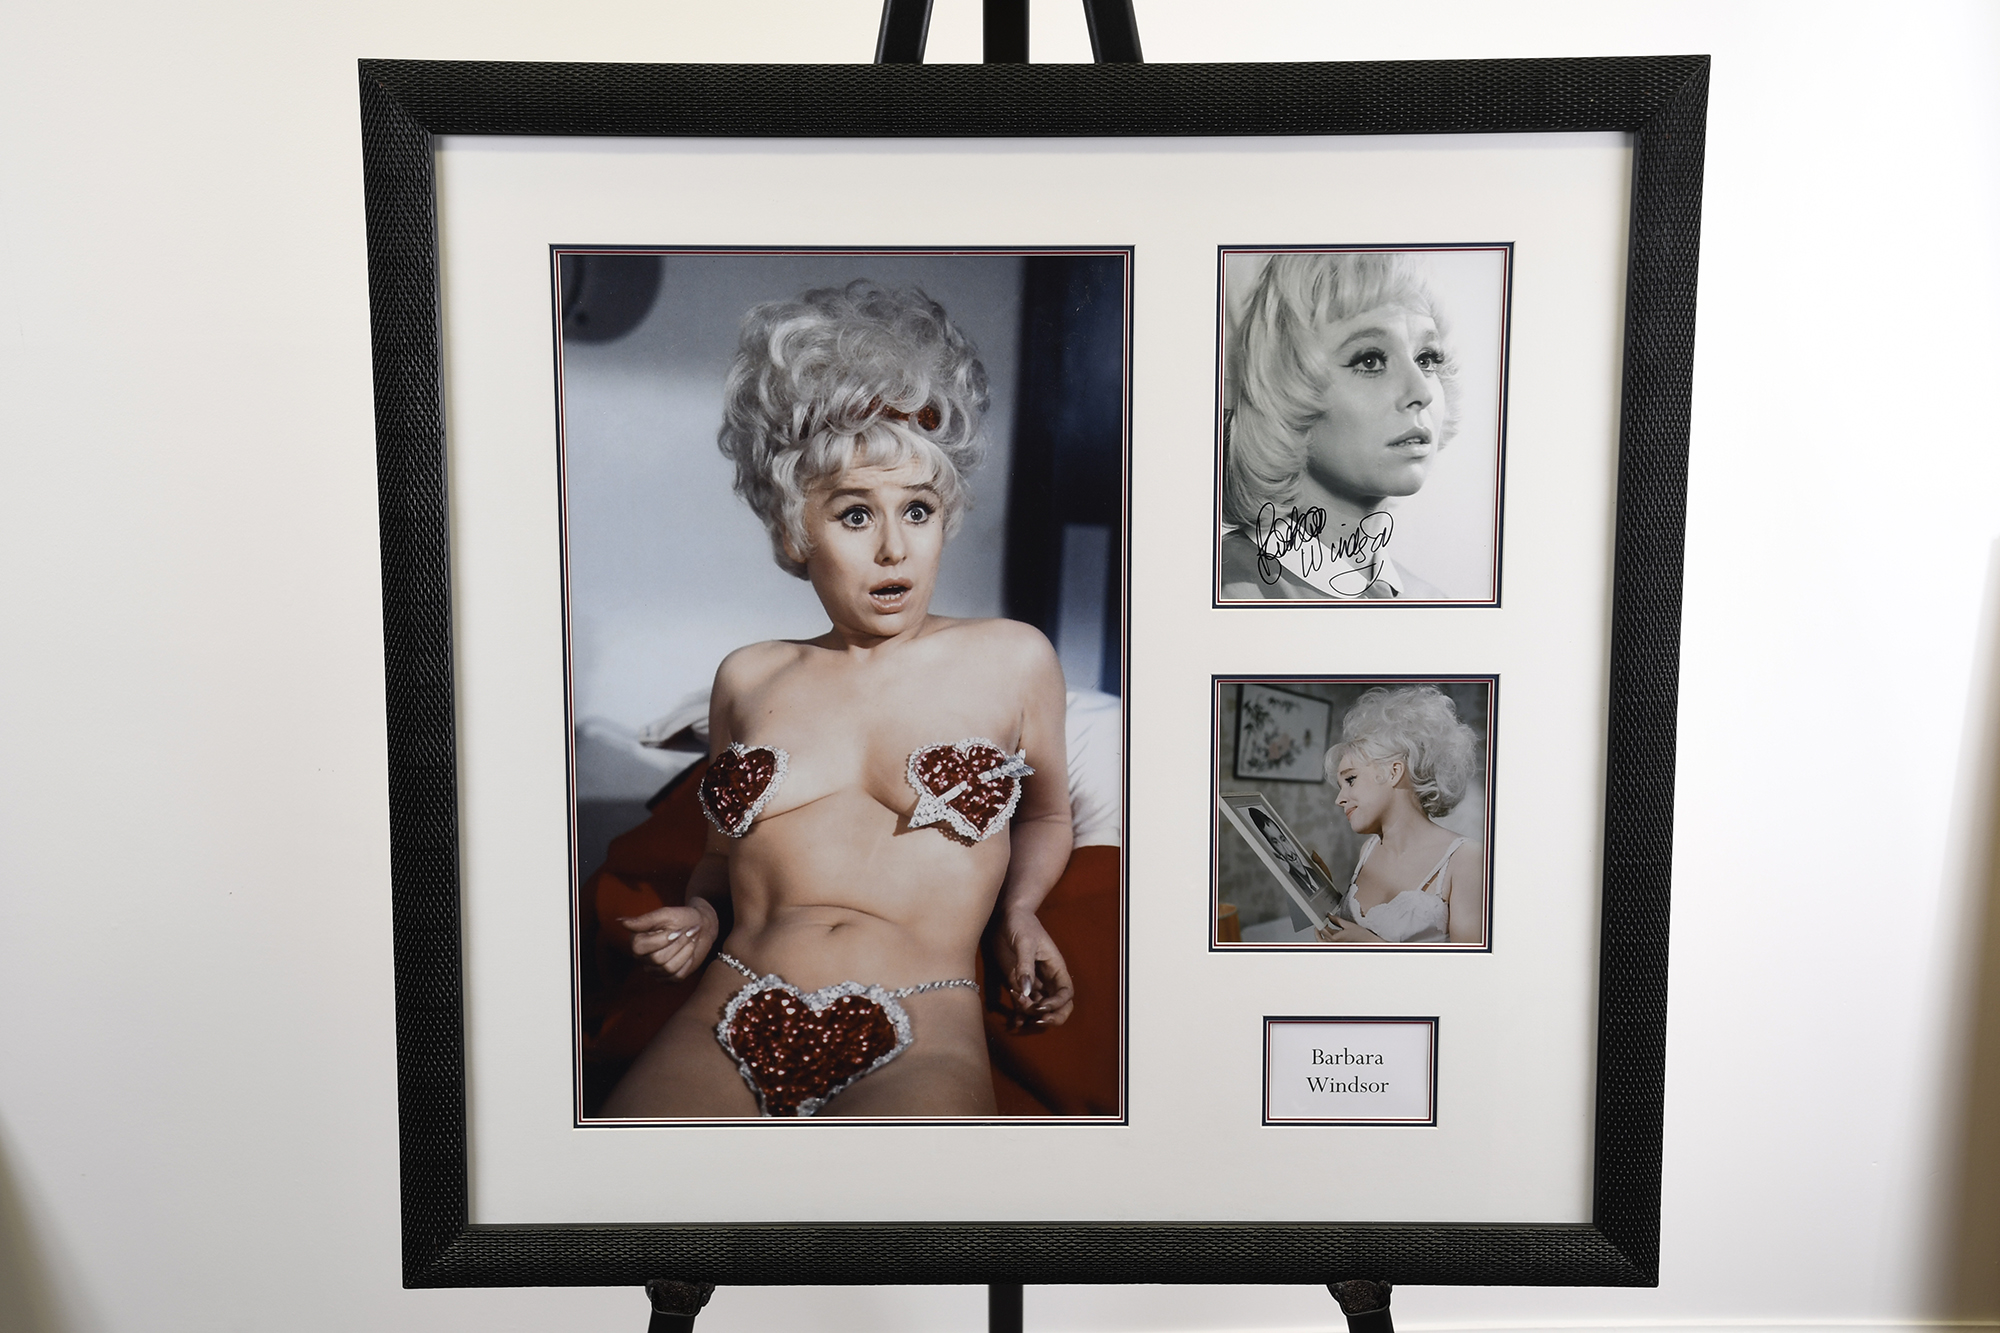 Barbara Windsor Signed Framed Memorabilia